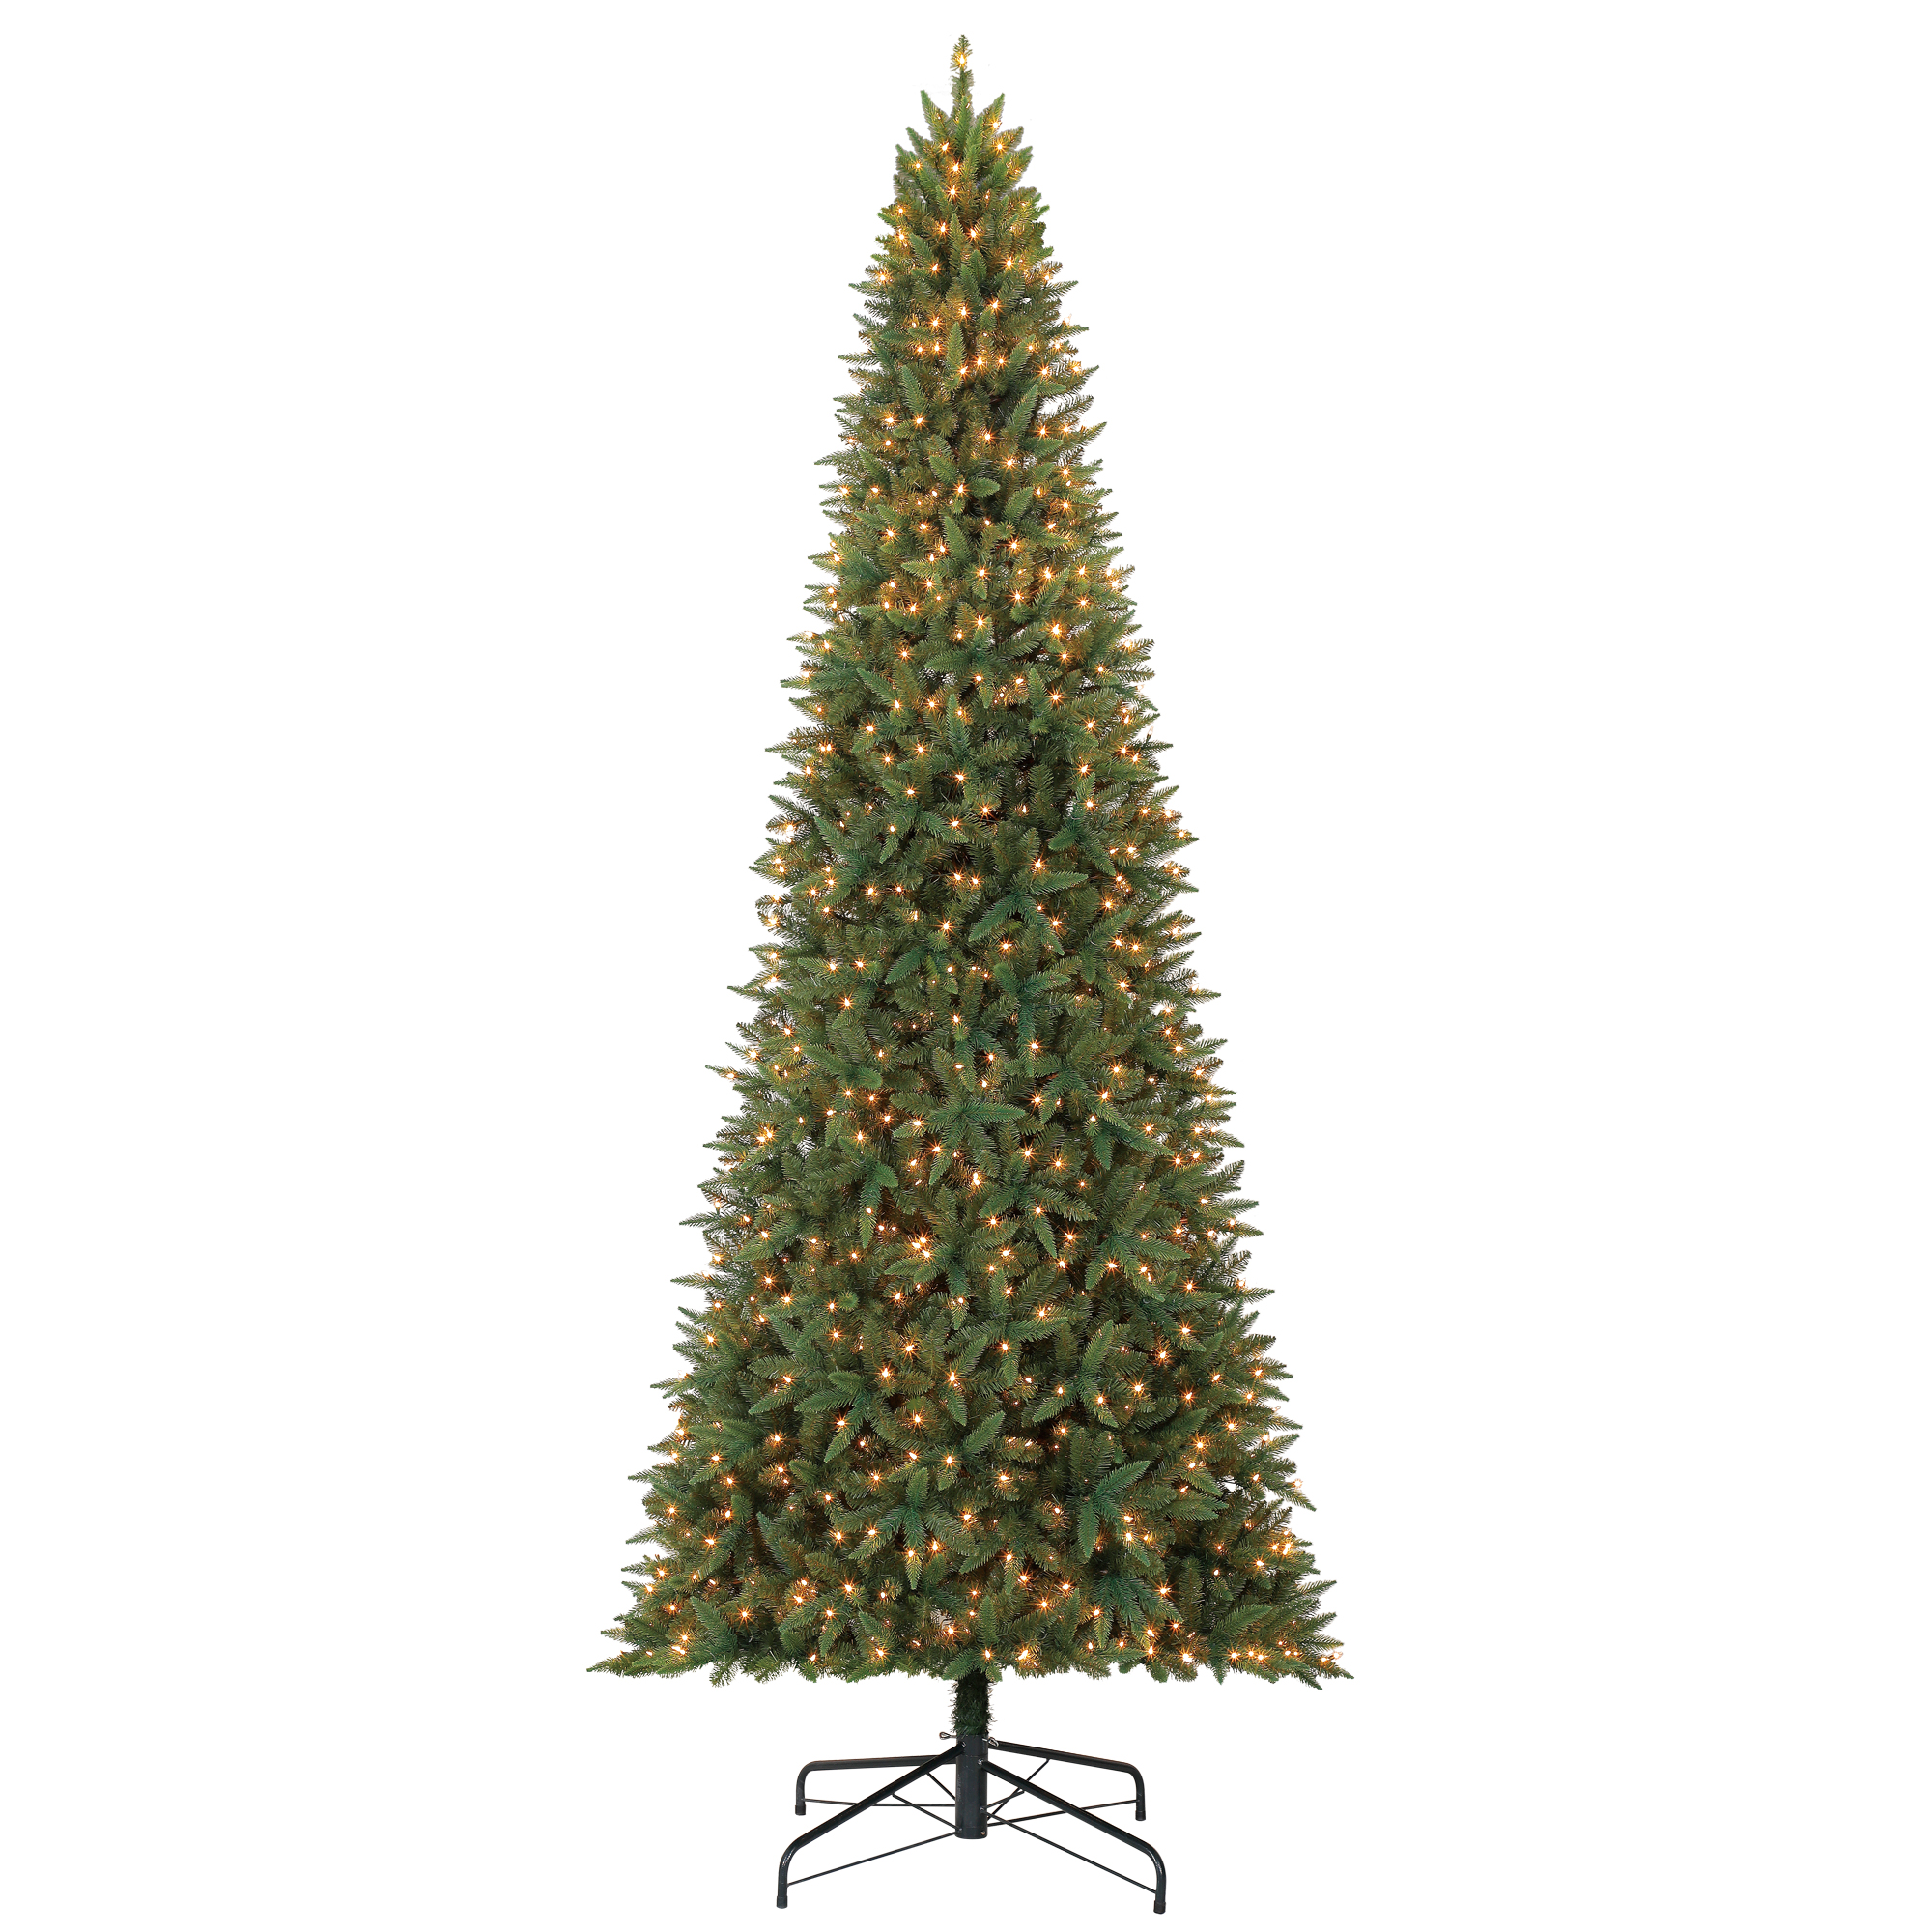 Holiday Time 12ft Pre-Lit Williams Pine Artificial Christmas Tree with 1100 Clear Lights